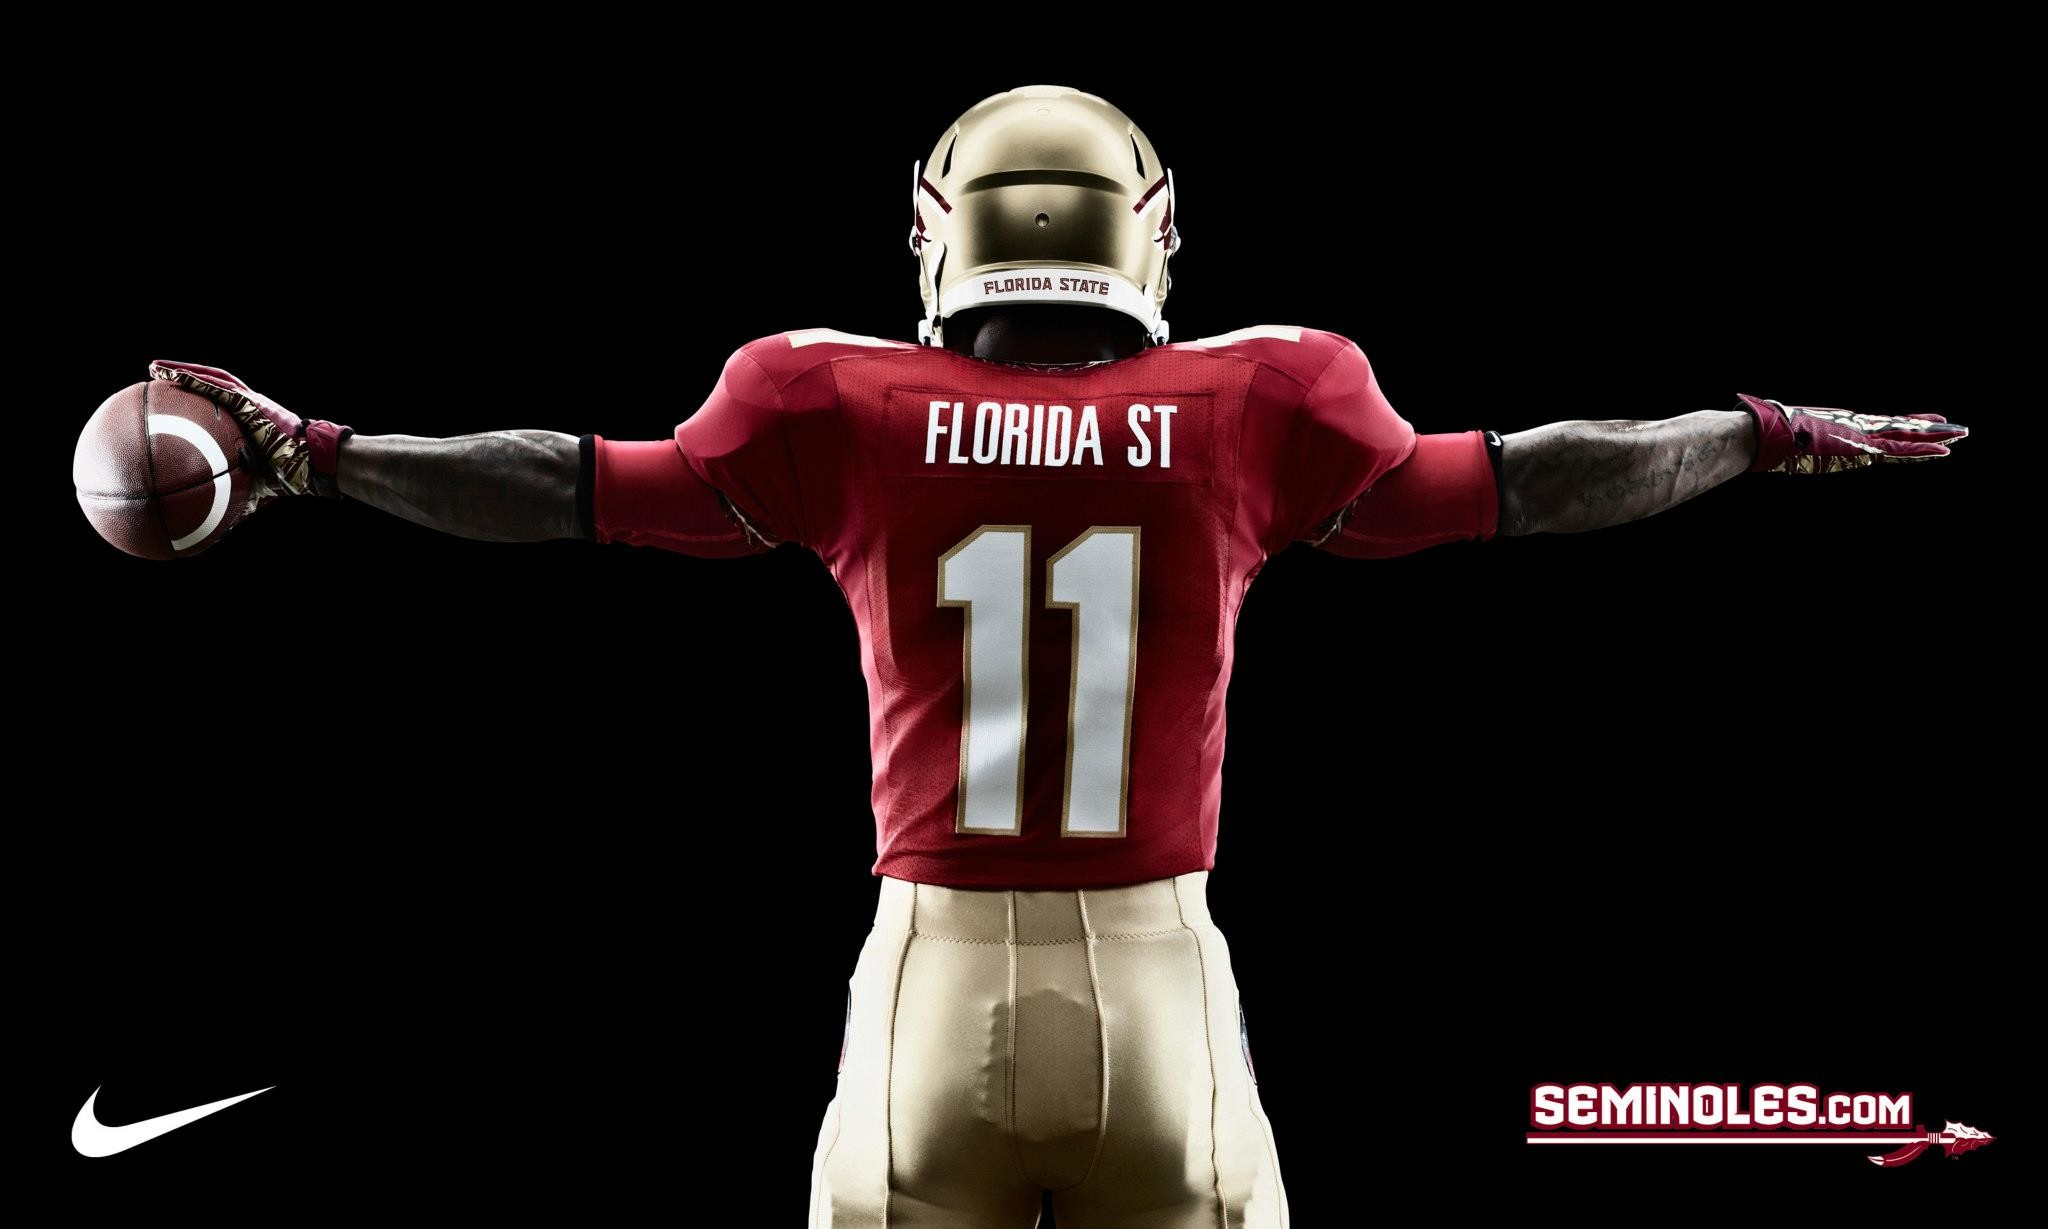 Florida state wallpaper hd 69 images 2048x1229 forida state seminoles college football 14 wallpaper 2048x1229 voltagebd Image collections